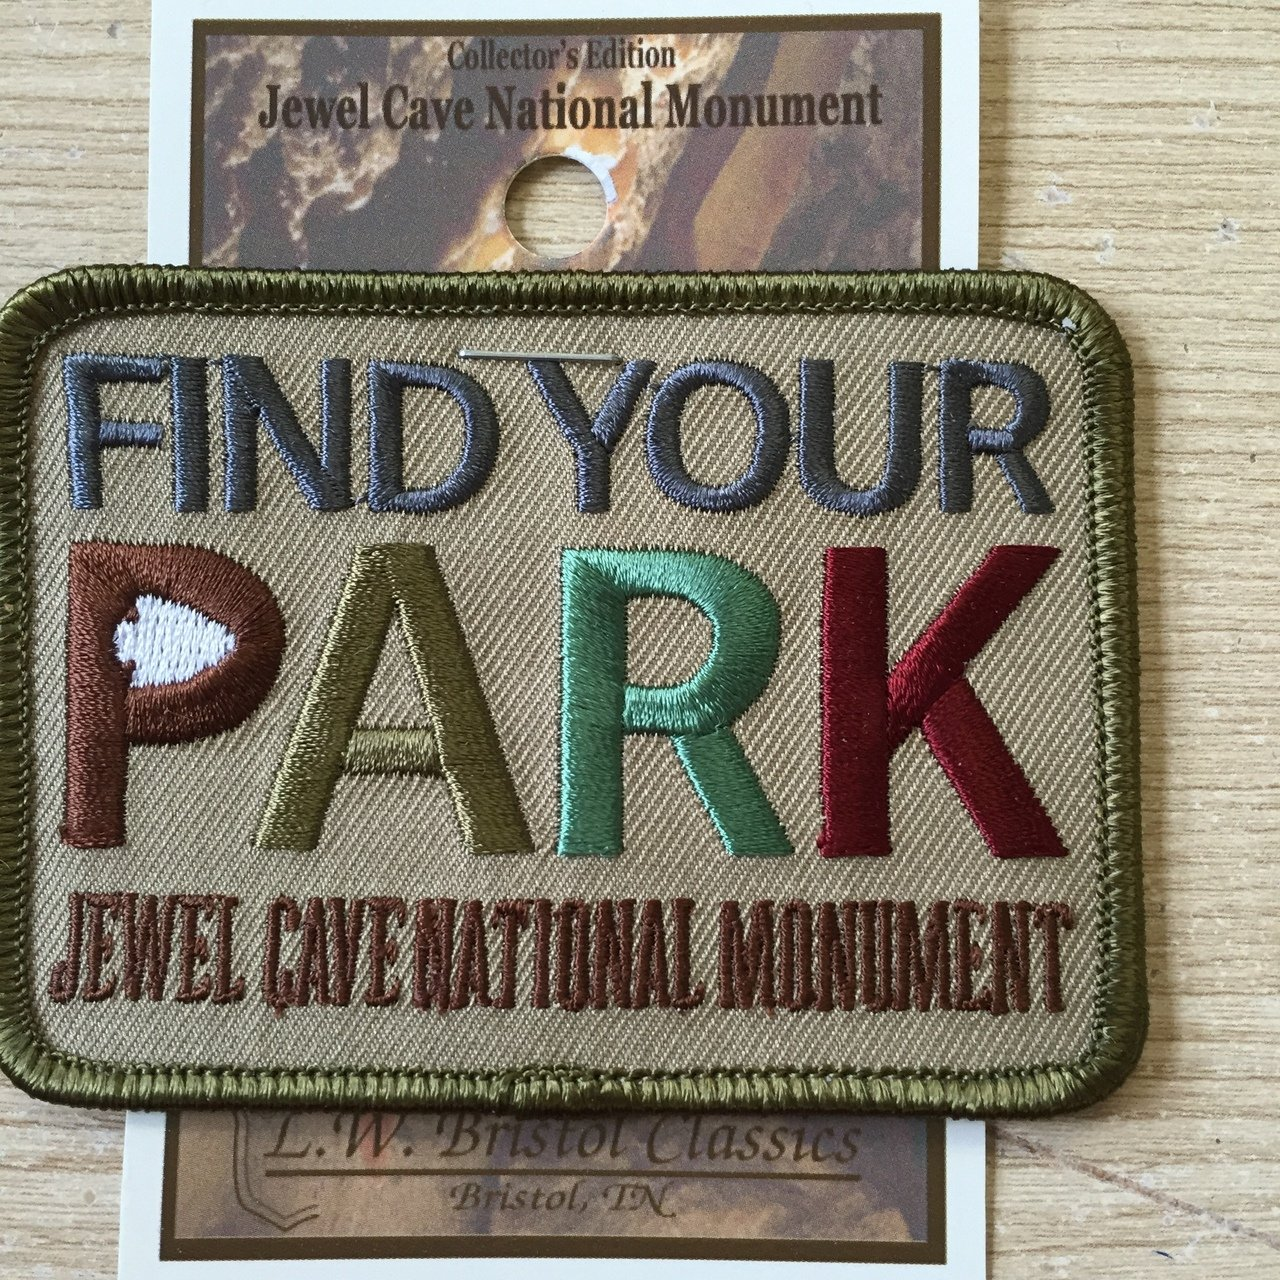 Find Your Park Patch Jewel Cave